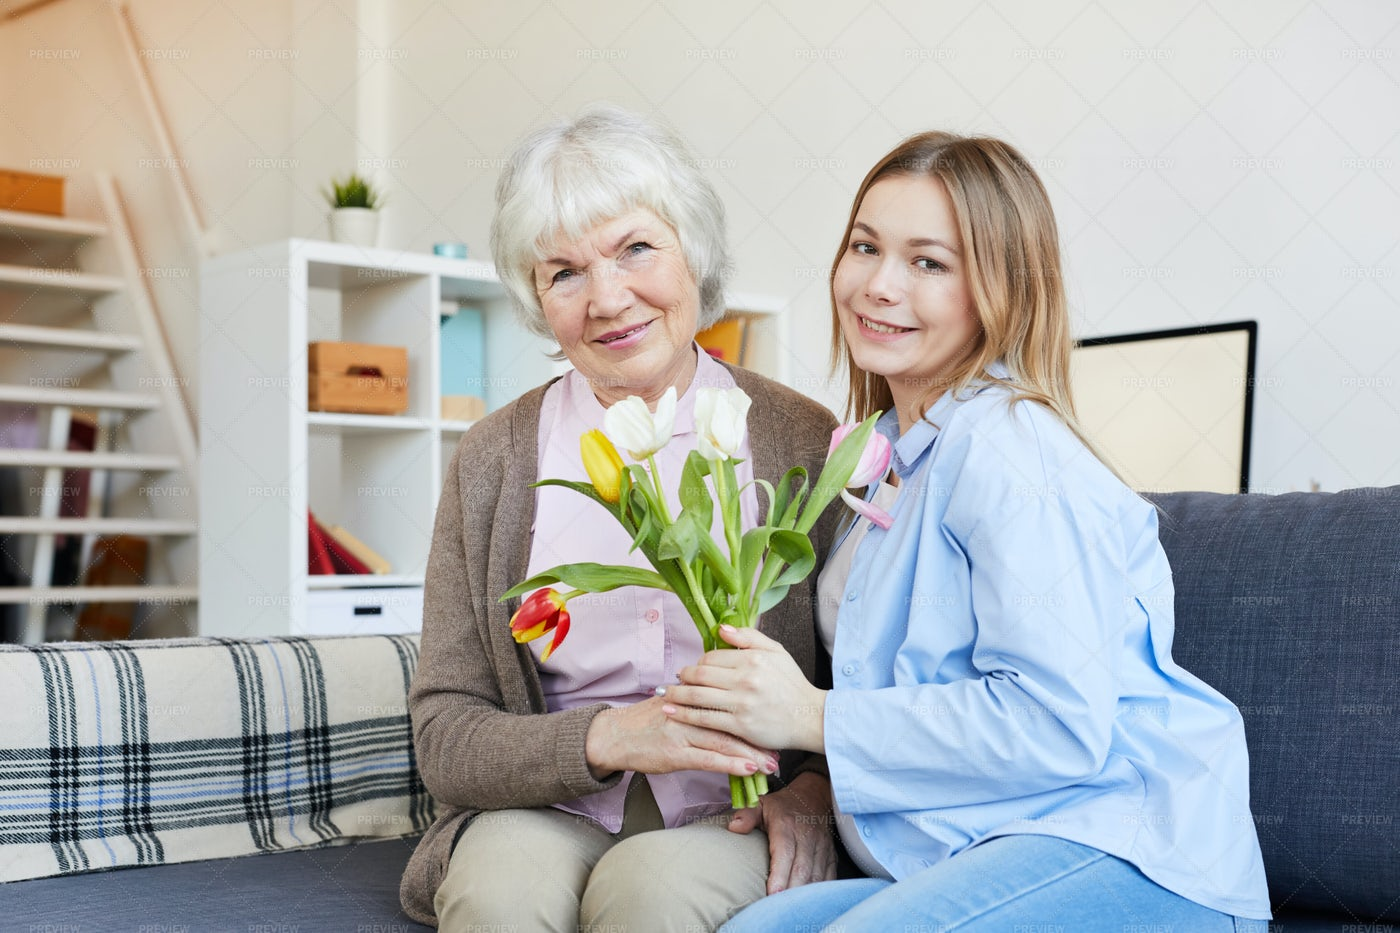 Young Woman Posing With Mother: Stock Photos